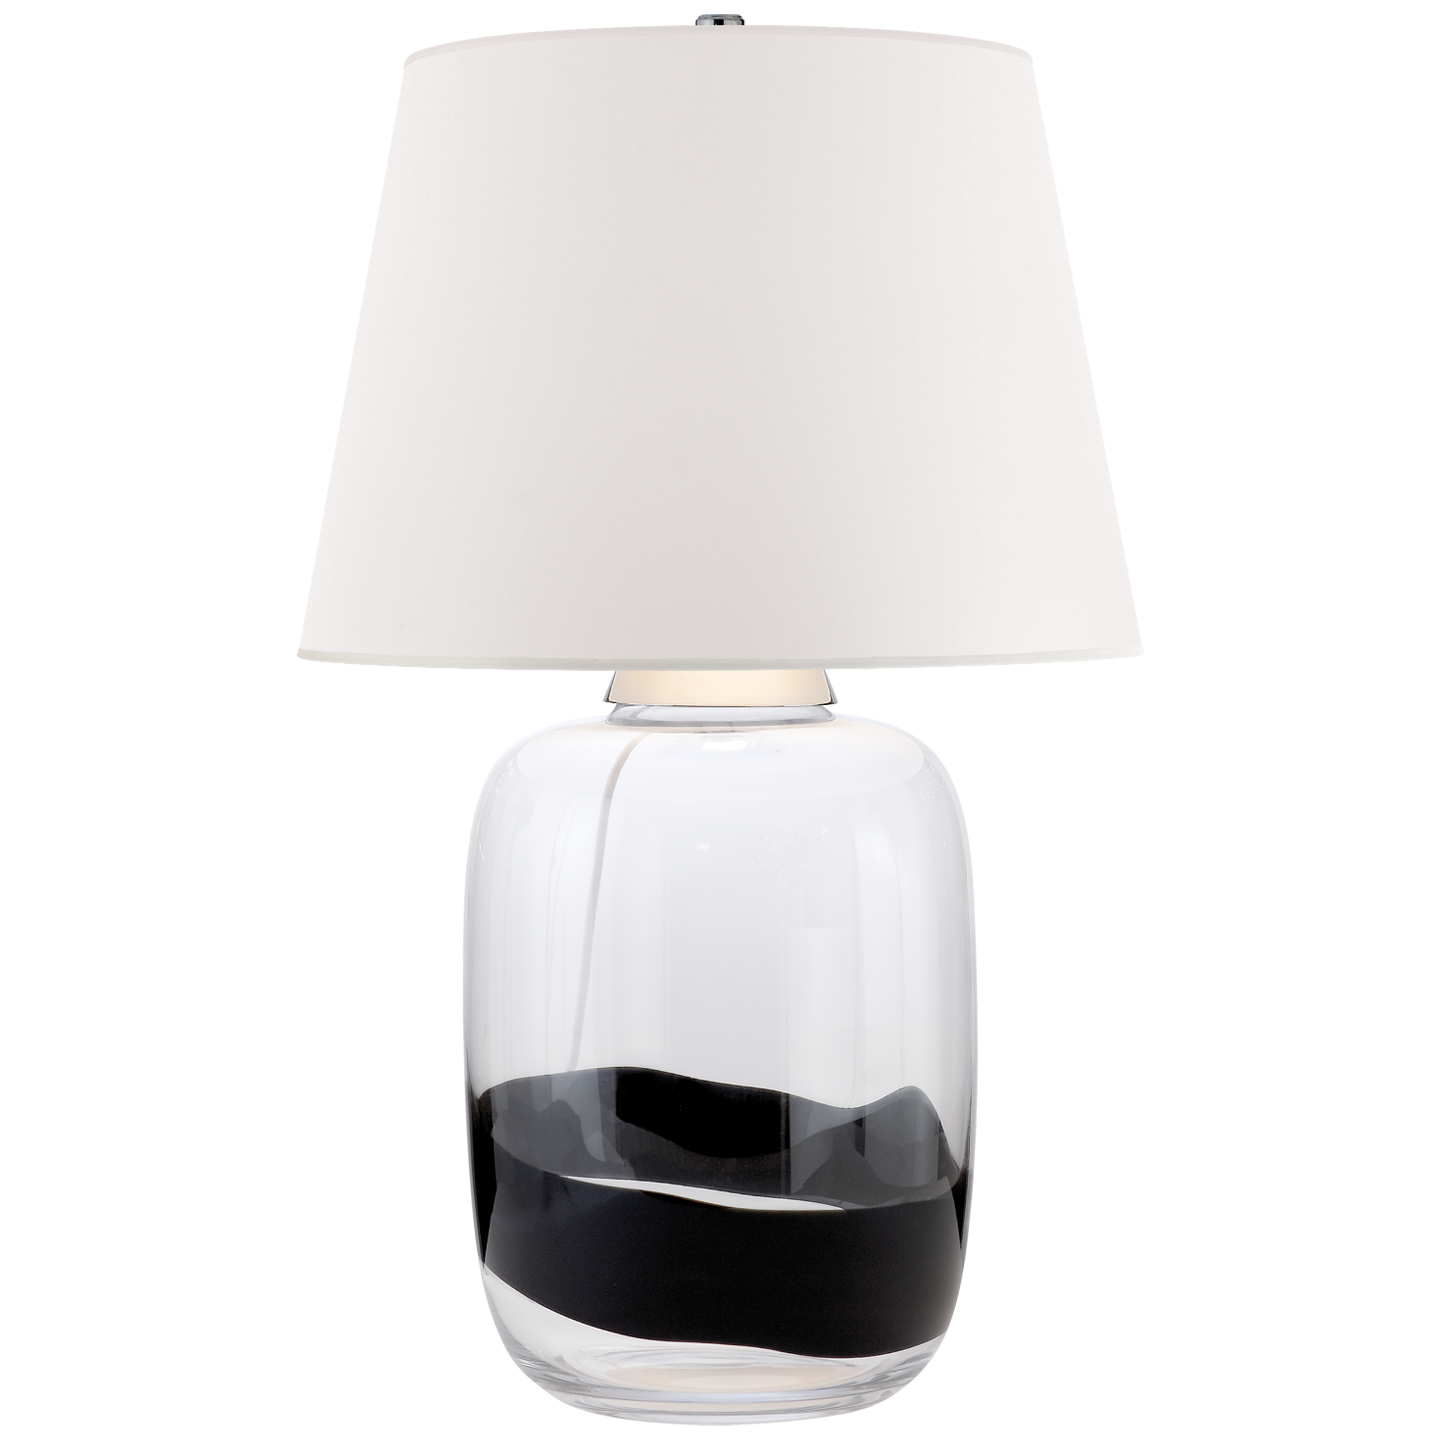 Adela Large Table Lamp In Clear And Black Glass With White Paper Shade Lamp Table Lamp Large Table Lamps